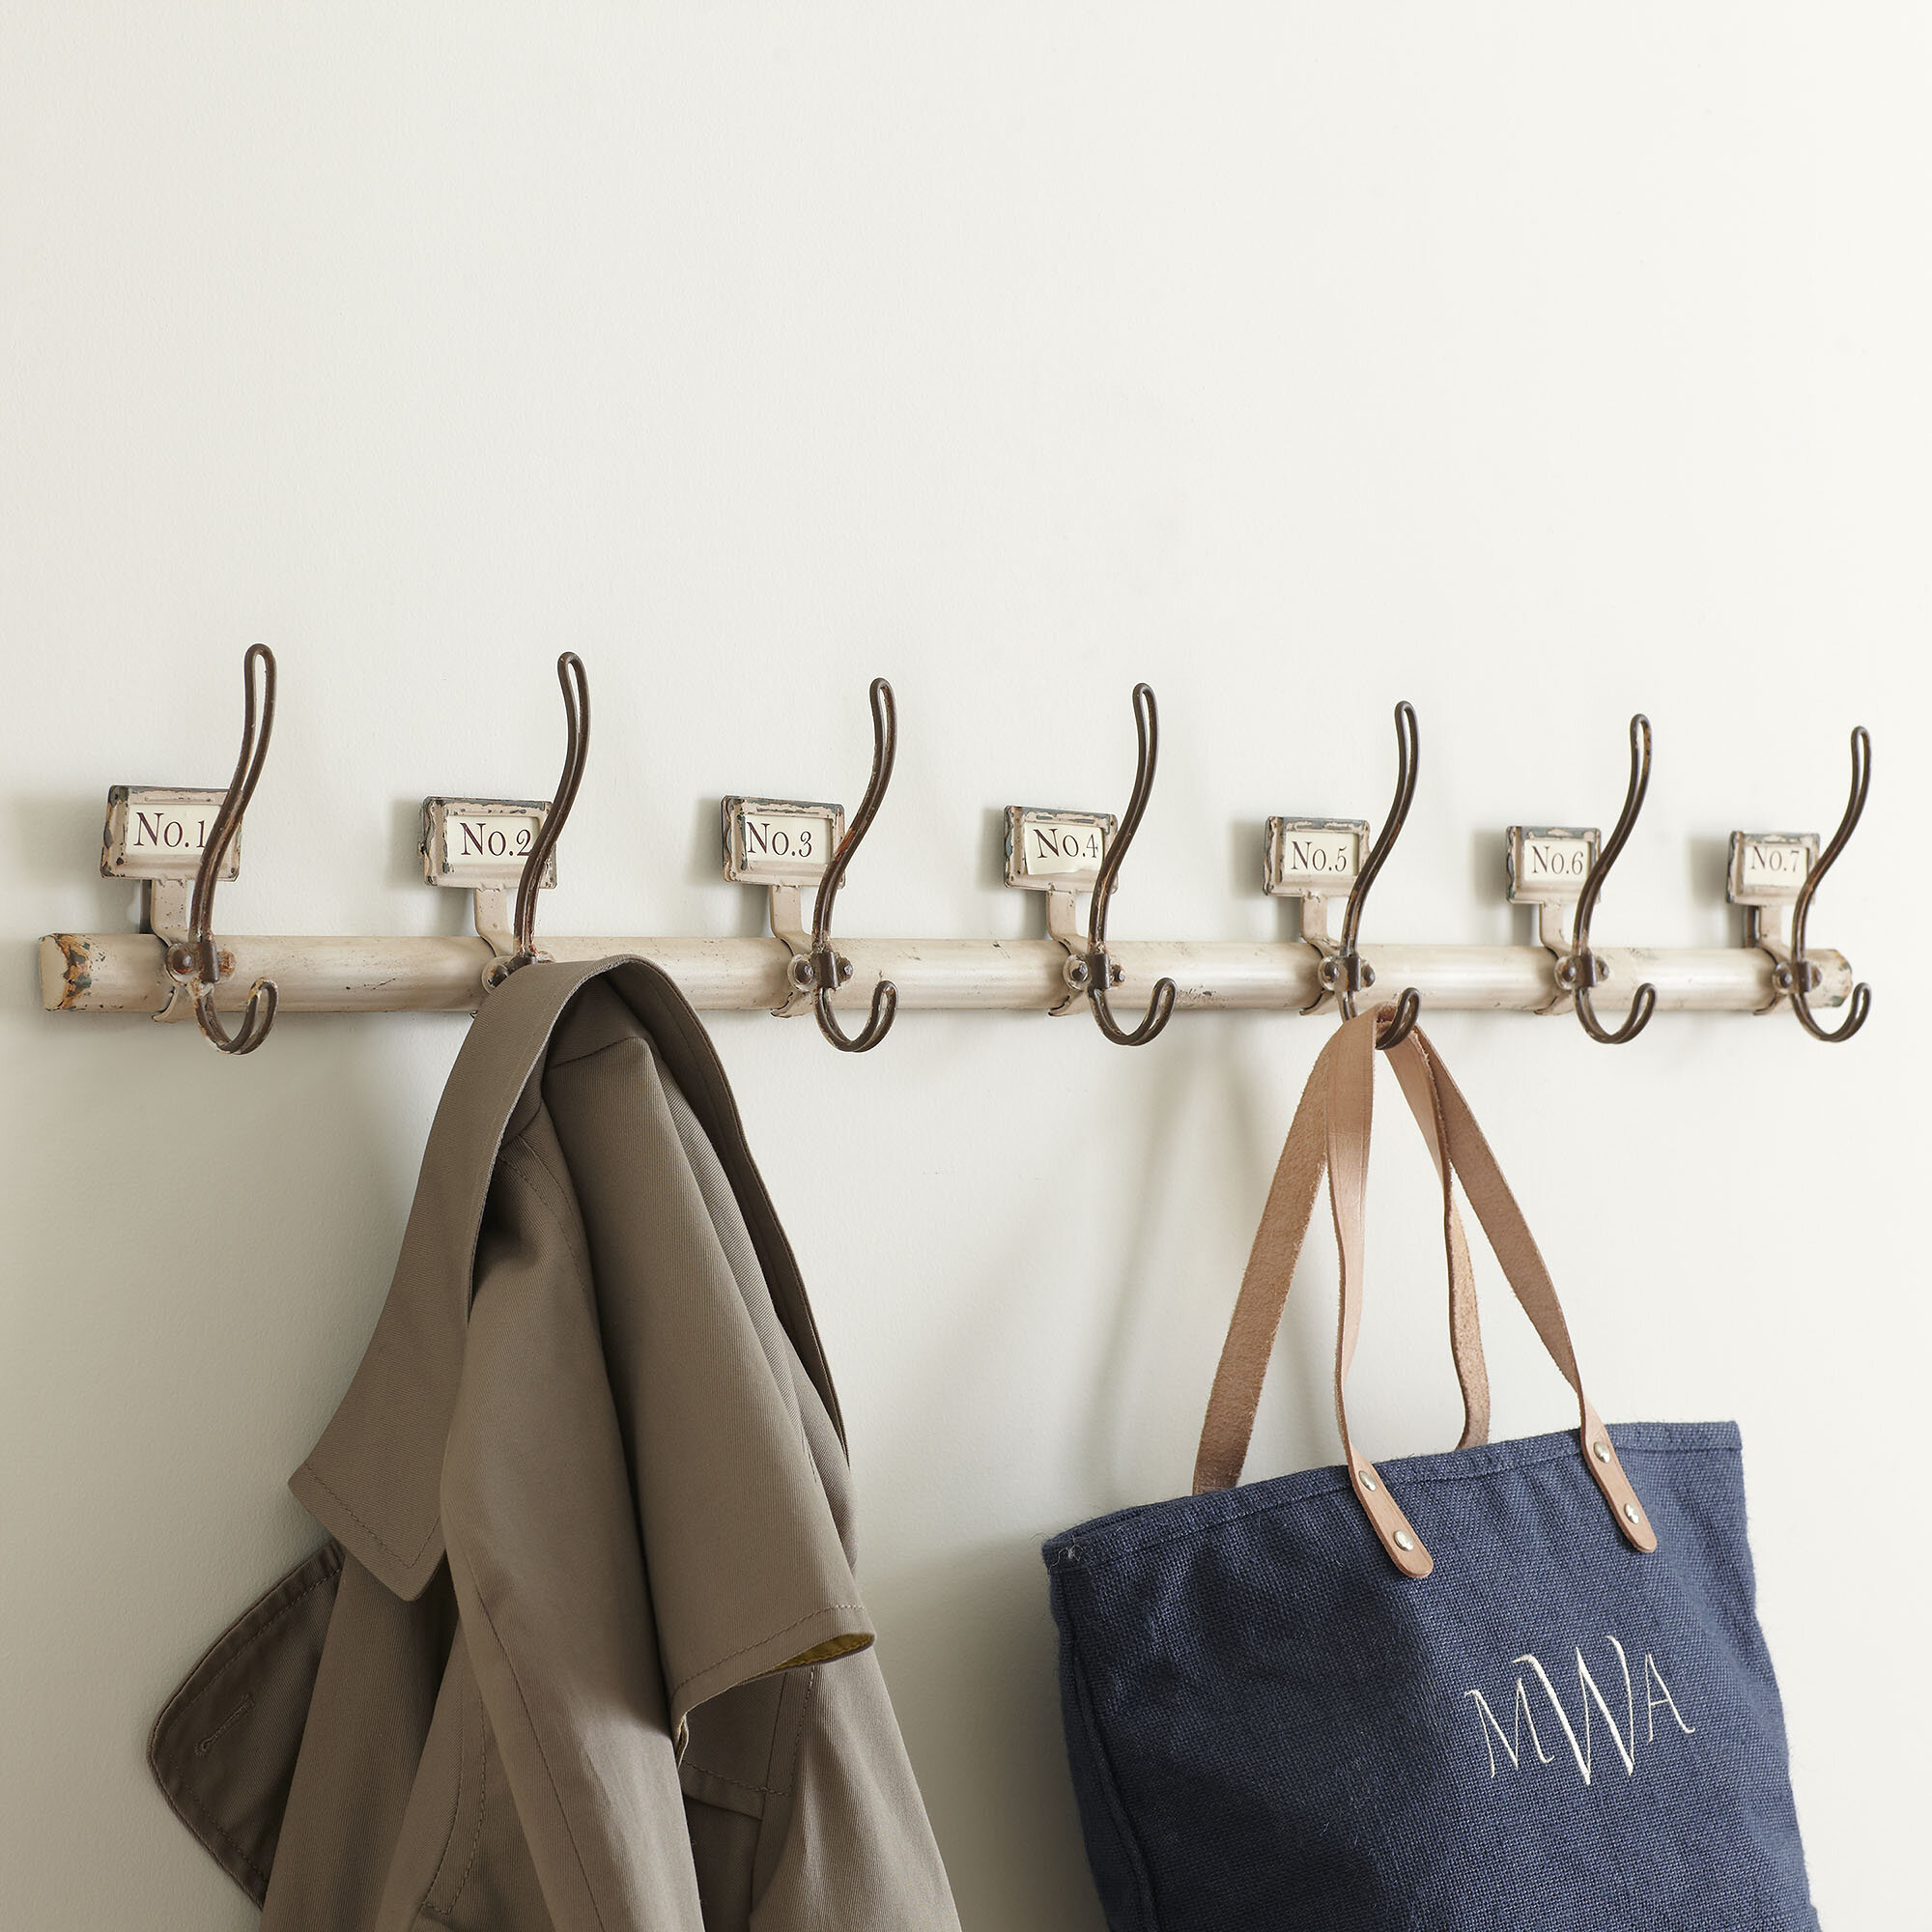 i in pretty decor bedroom as hangers storage owl girl jewelry girlinthegarage wall picture hooks garage decorative the img net